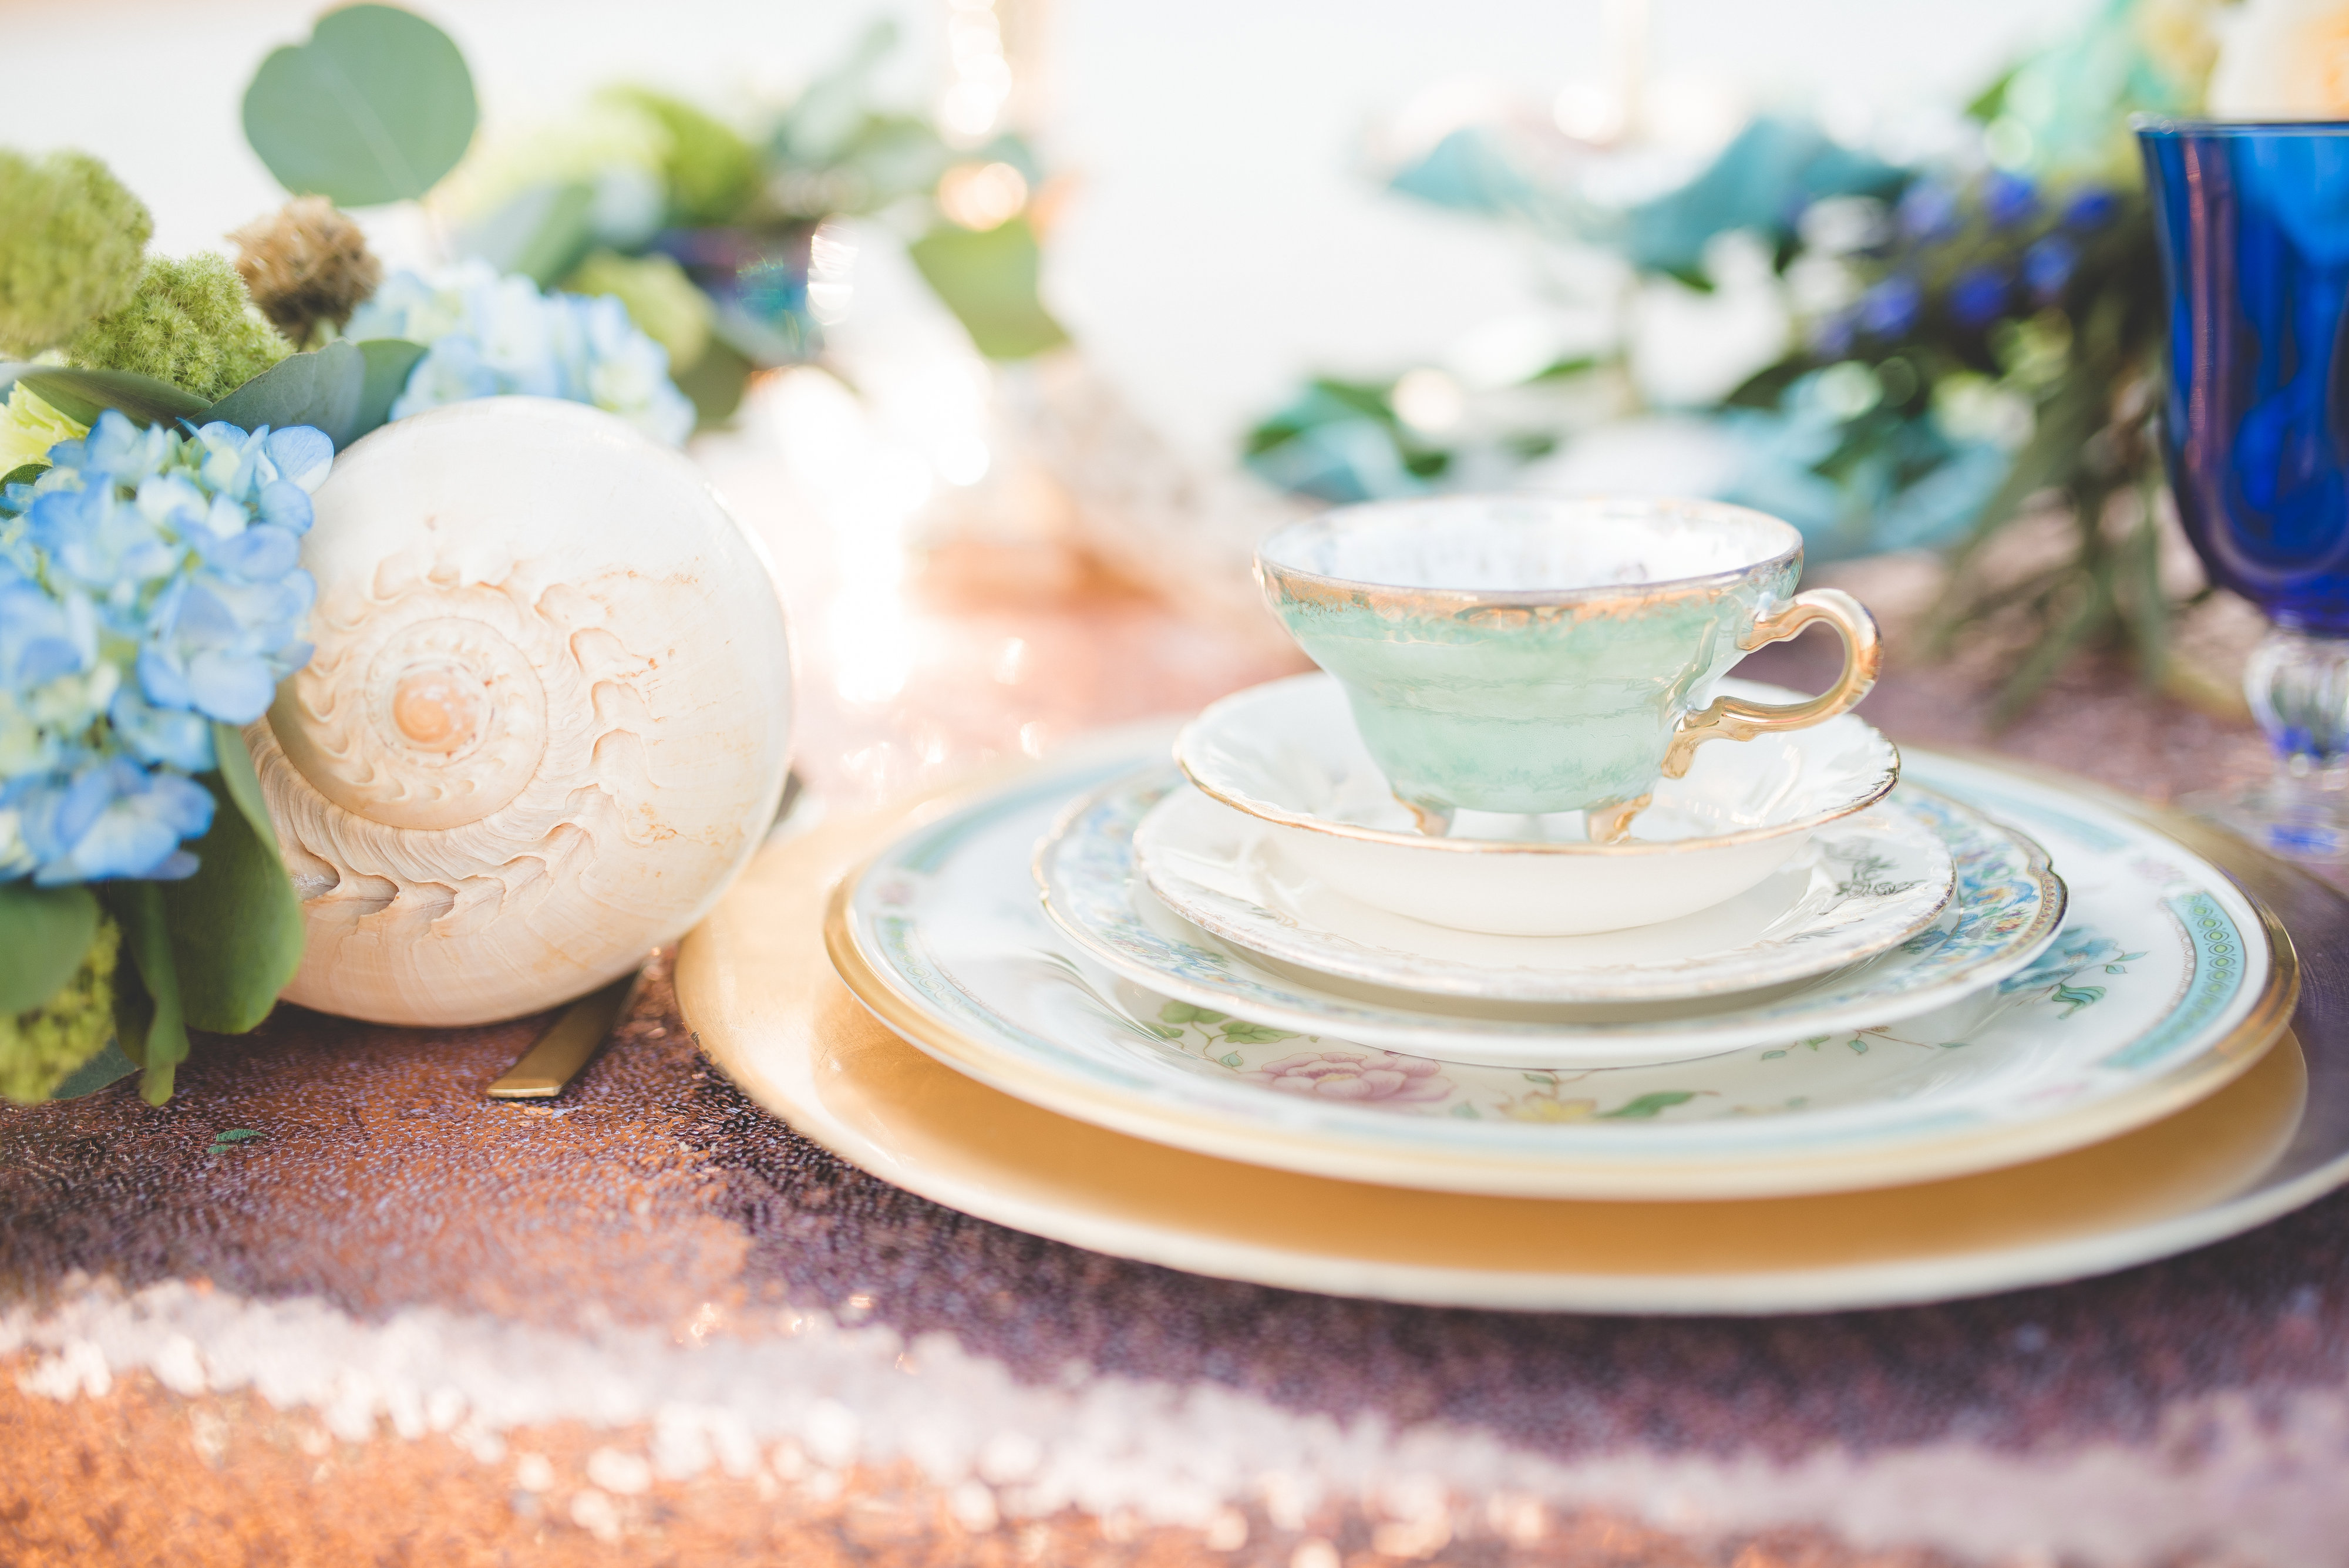 13 Sea and Ocean Décor Elements for Your Wedding - Inside Weddings